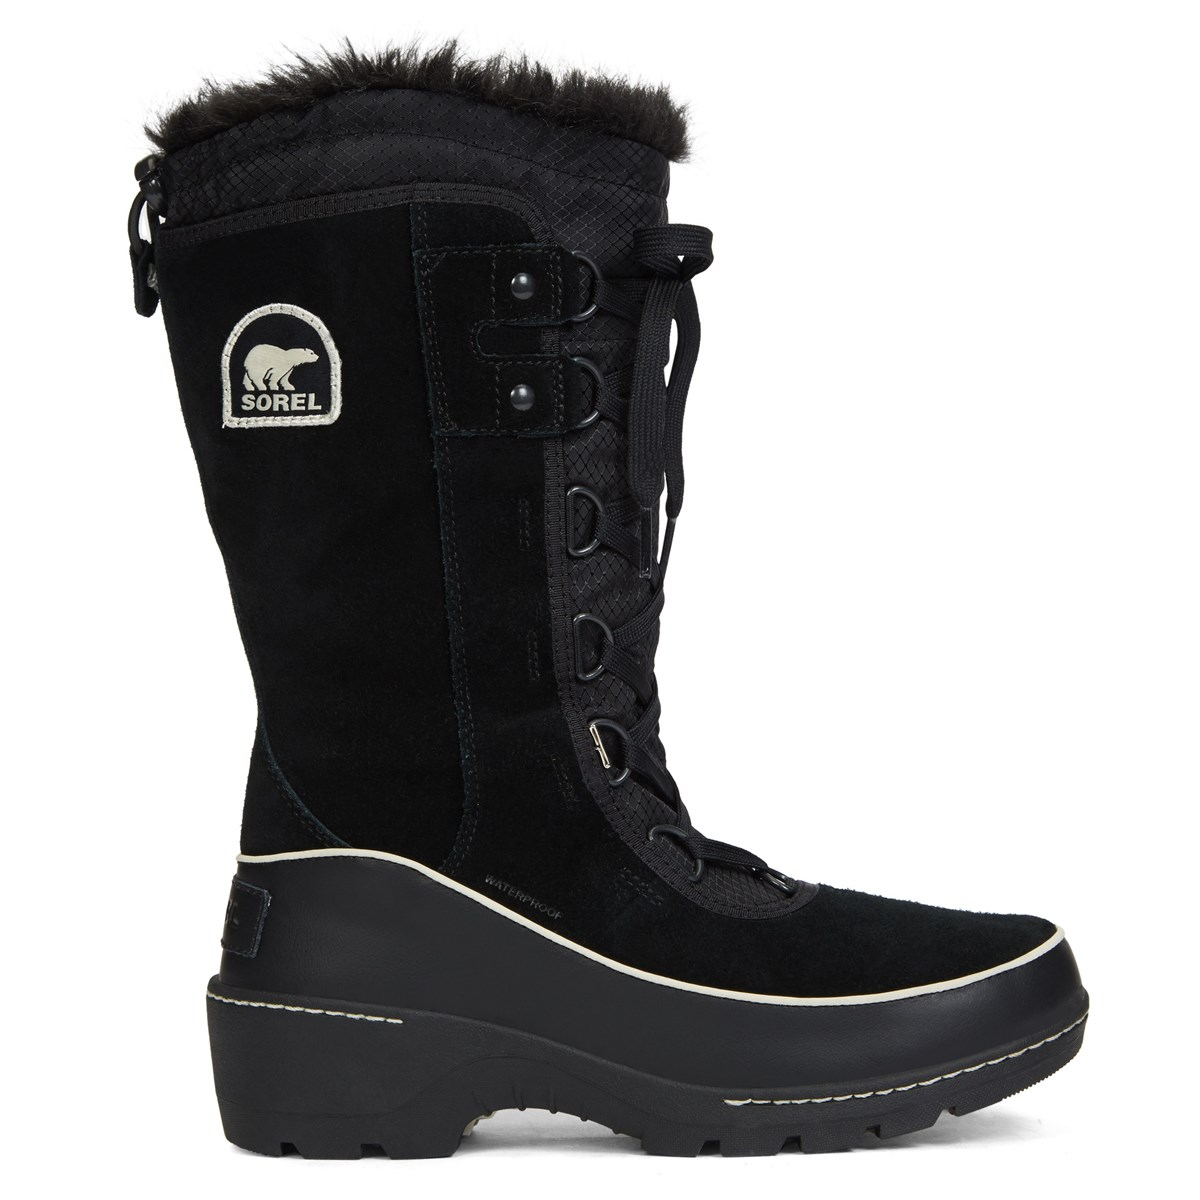 Women's Tivoli III High Boots in Black